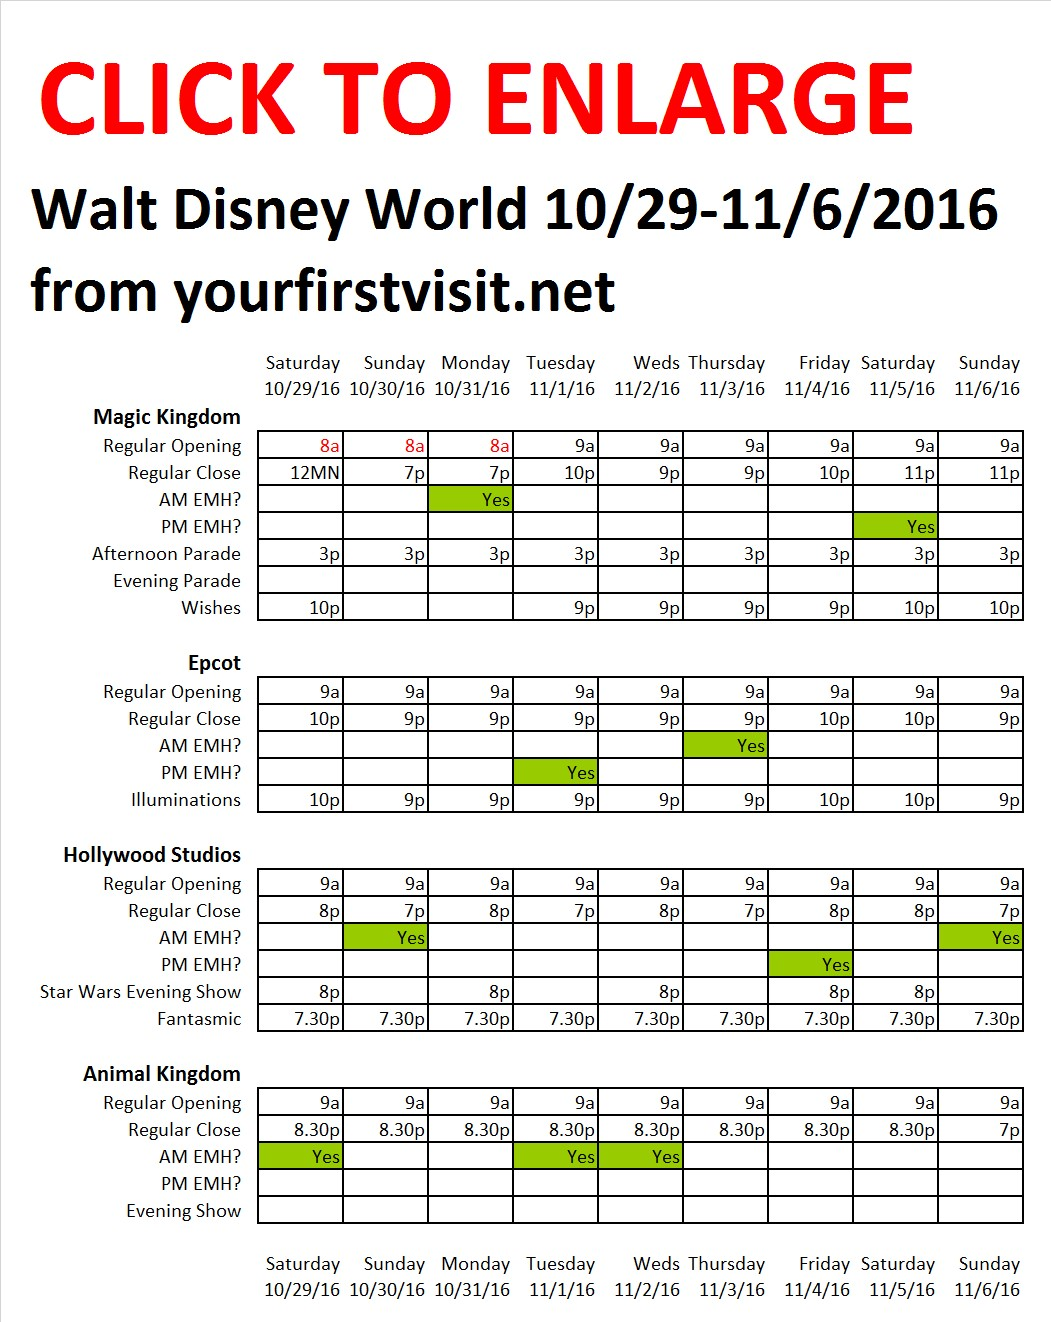 disney-world-10-29-to-11-6-2016-from-yourfirstvisit-net